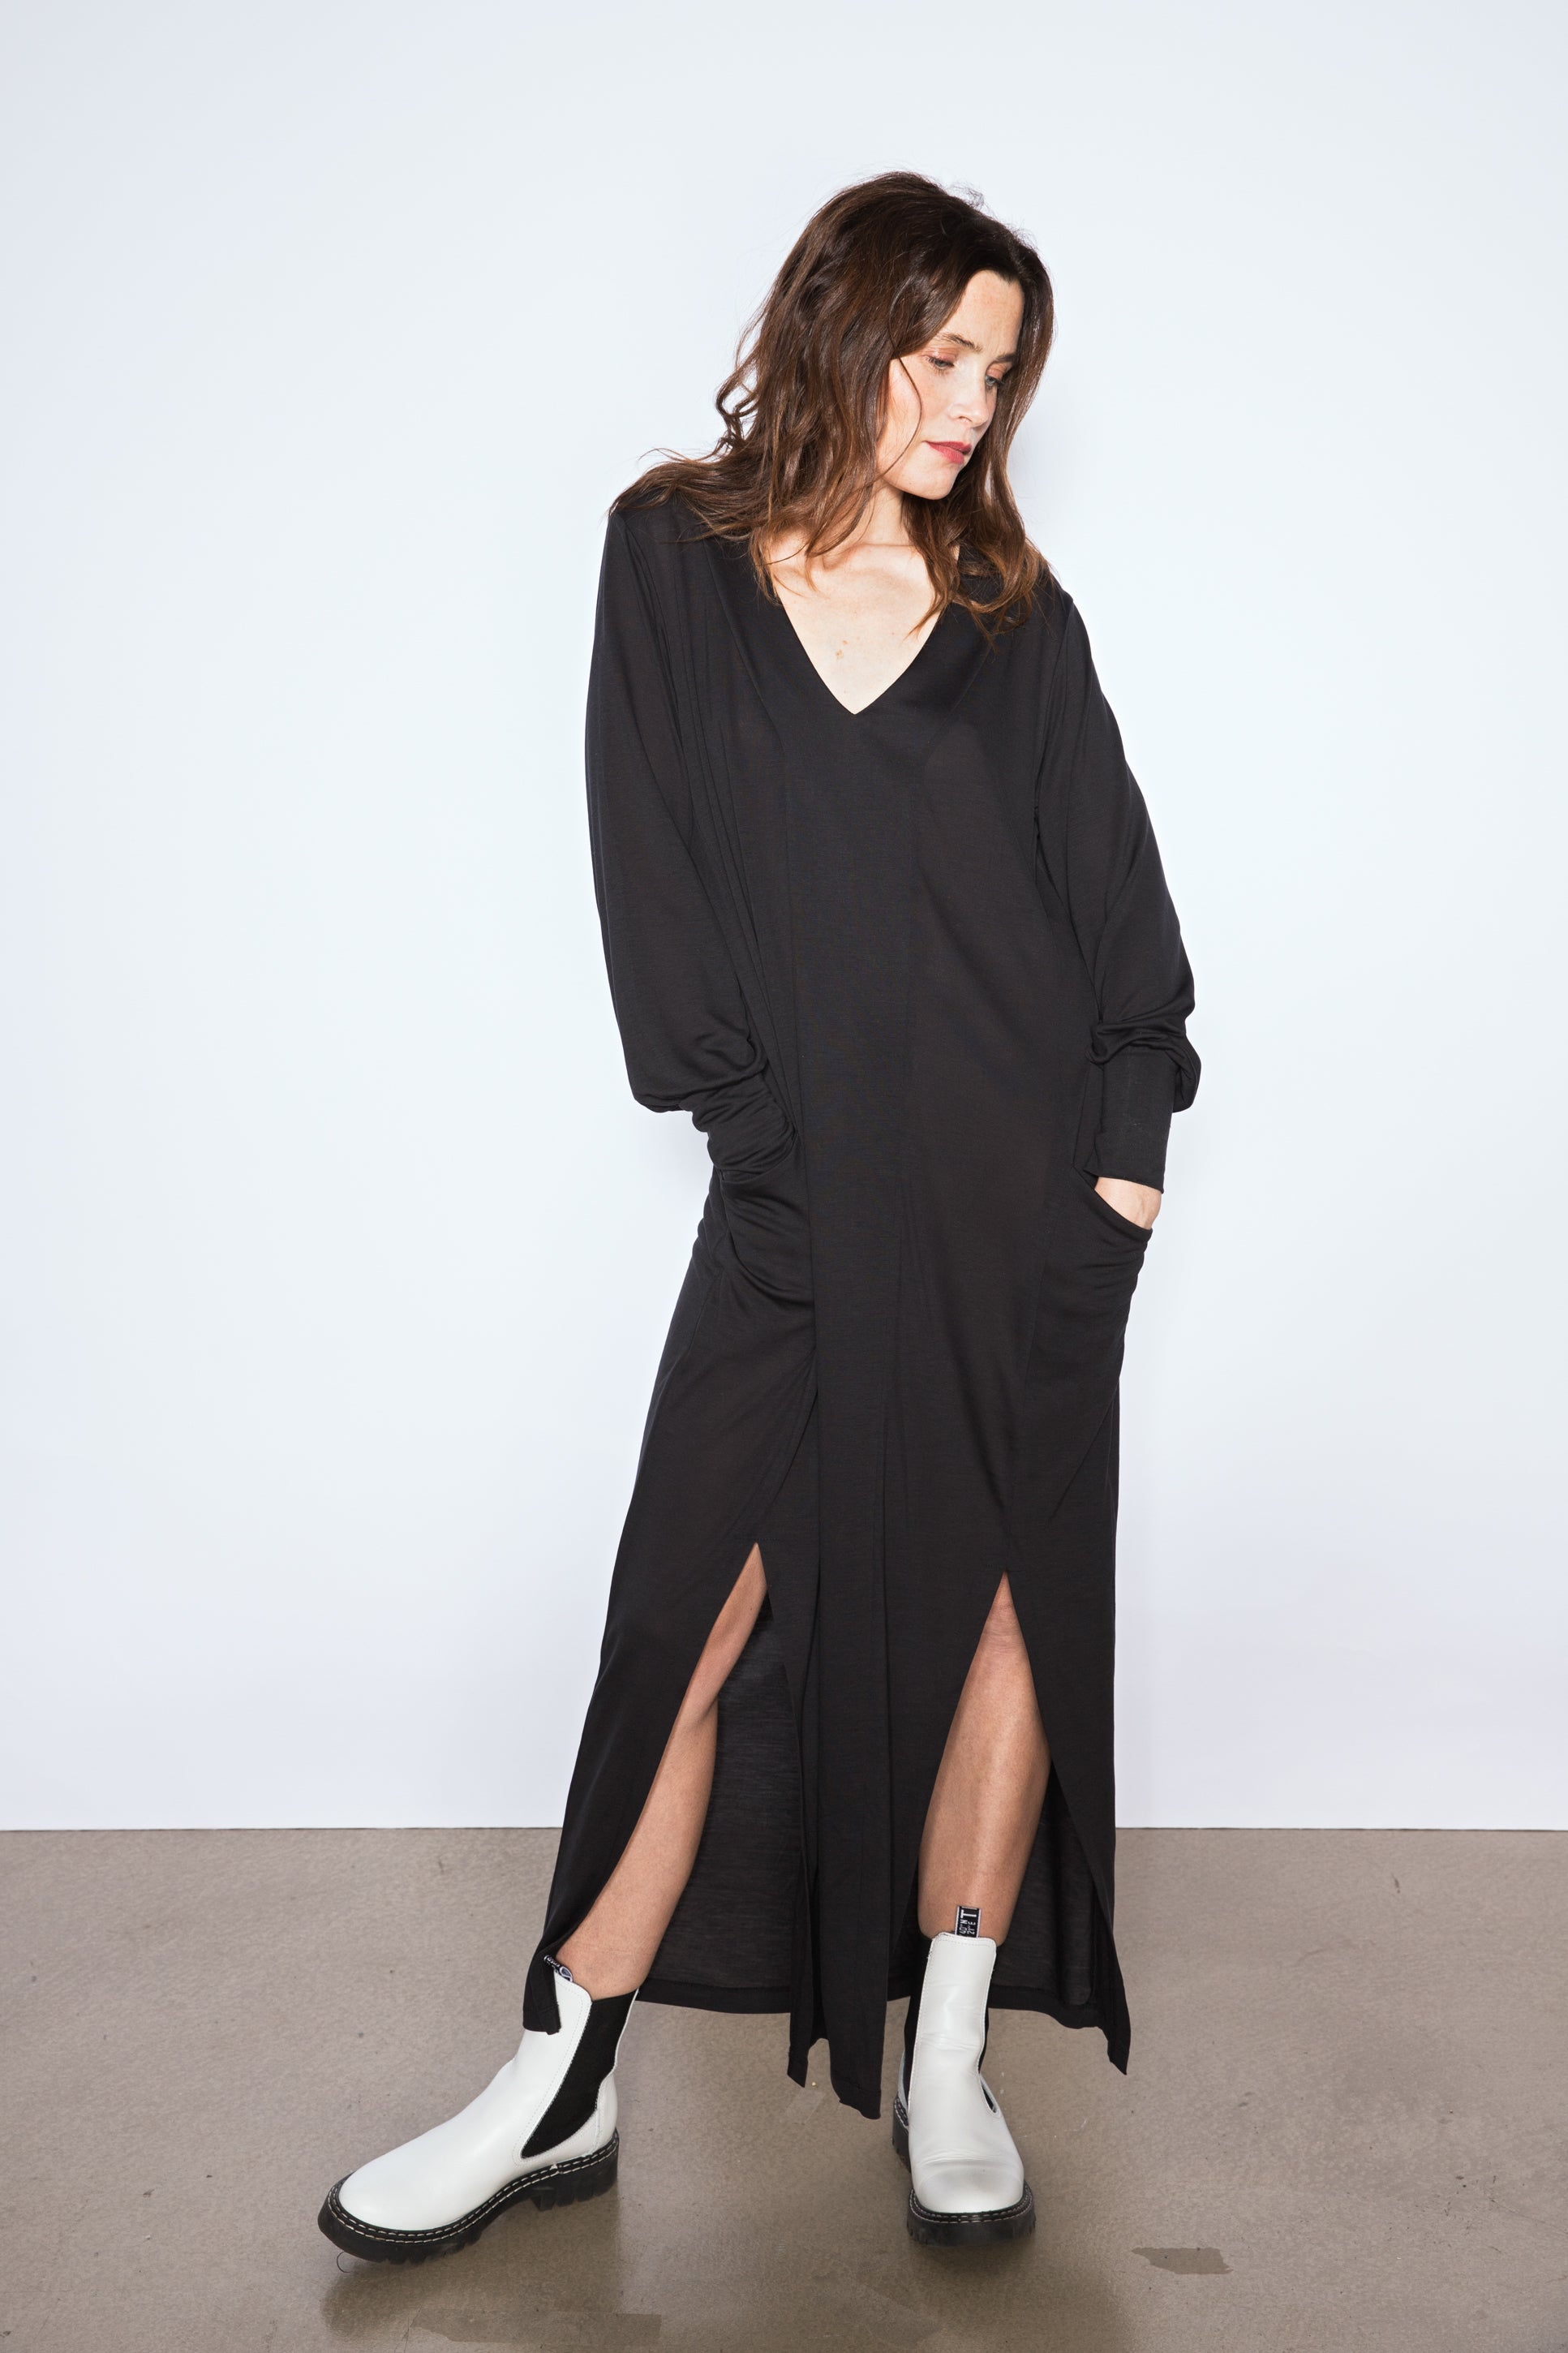 The Long Sleeved Kaftan Dress